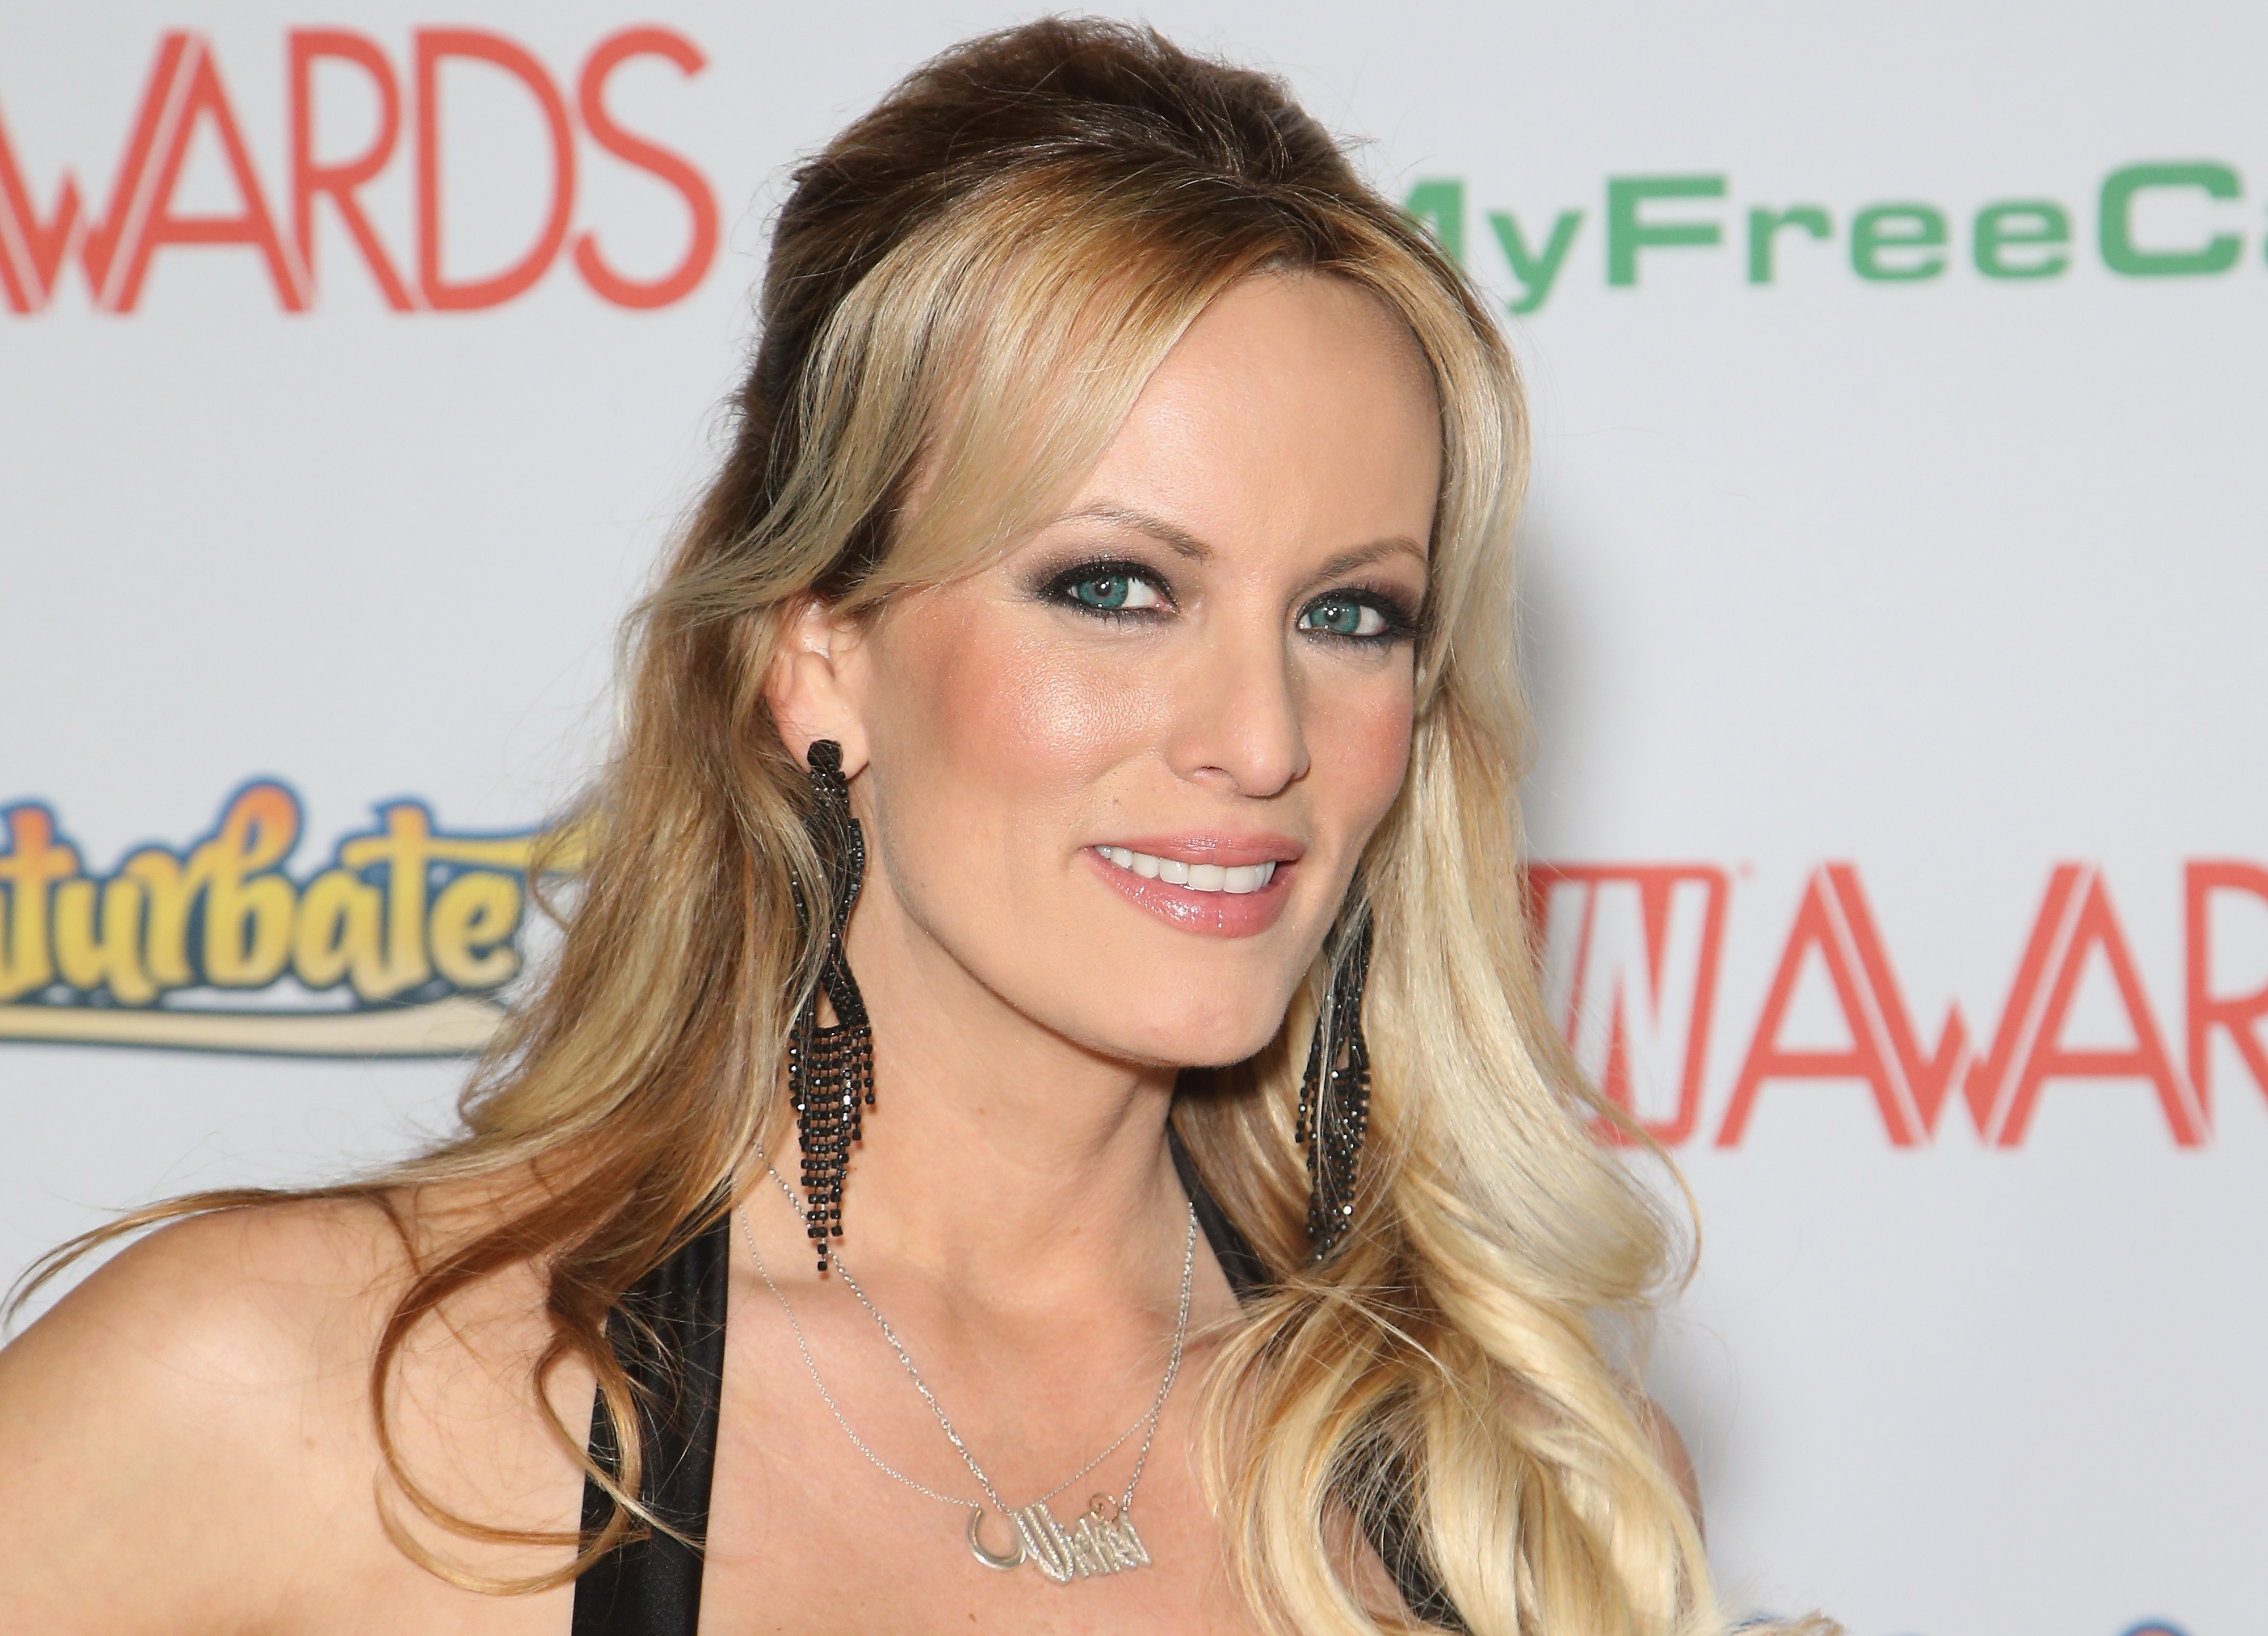 Everything You Need To Know About Stormy Daniels, The Porn Star Who ...